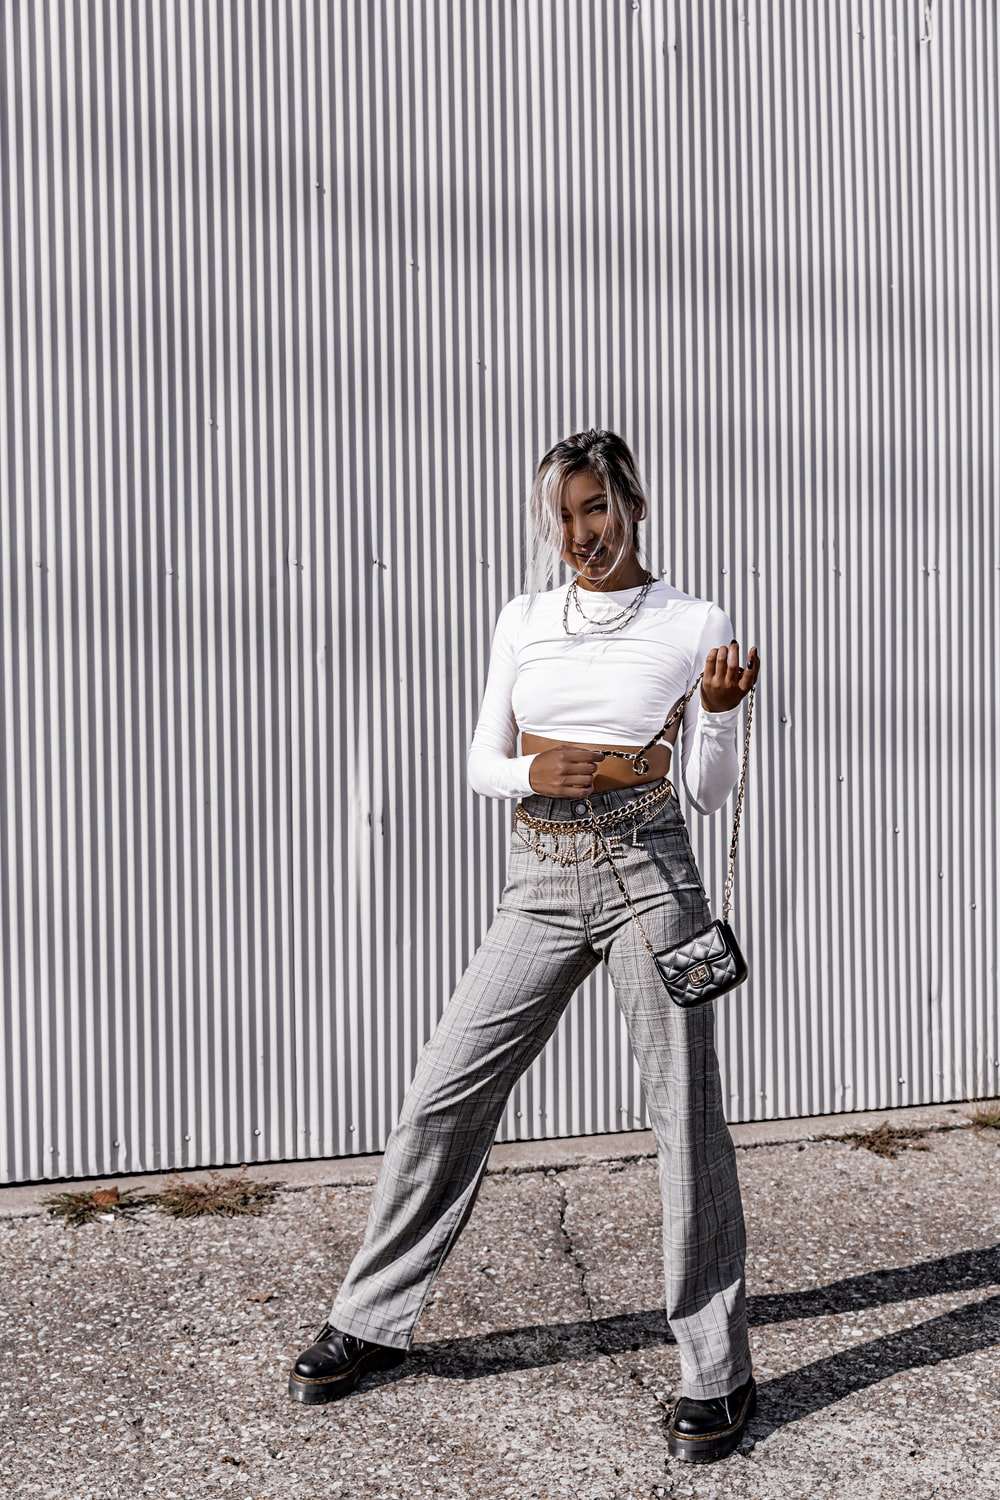 woman wearing white long-sleeved shirt and gra jeans